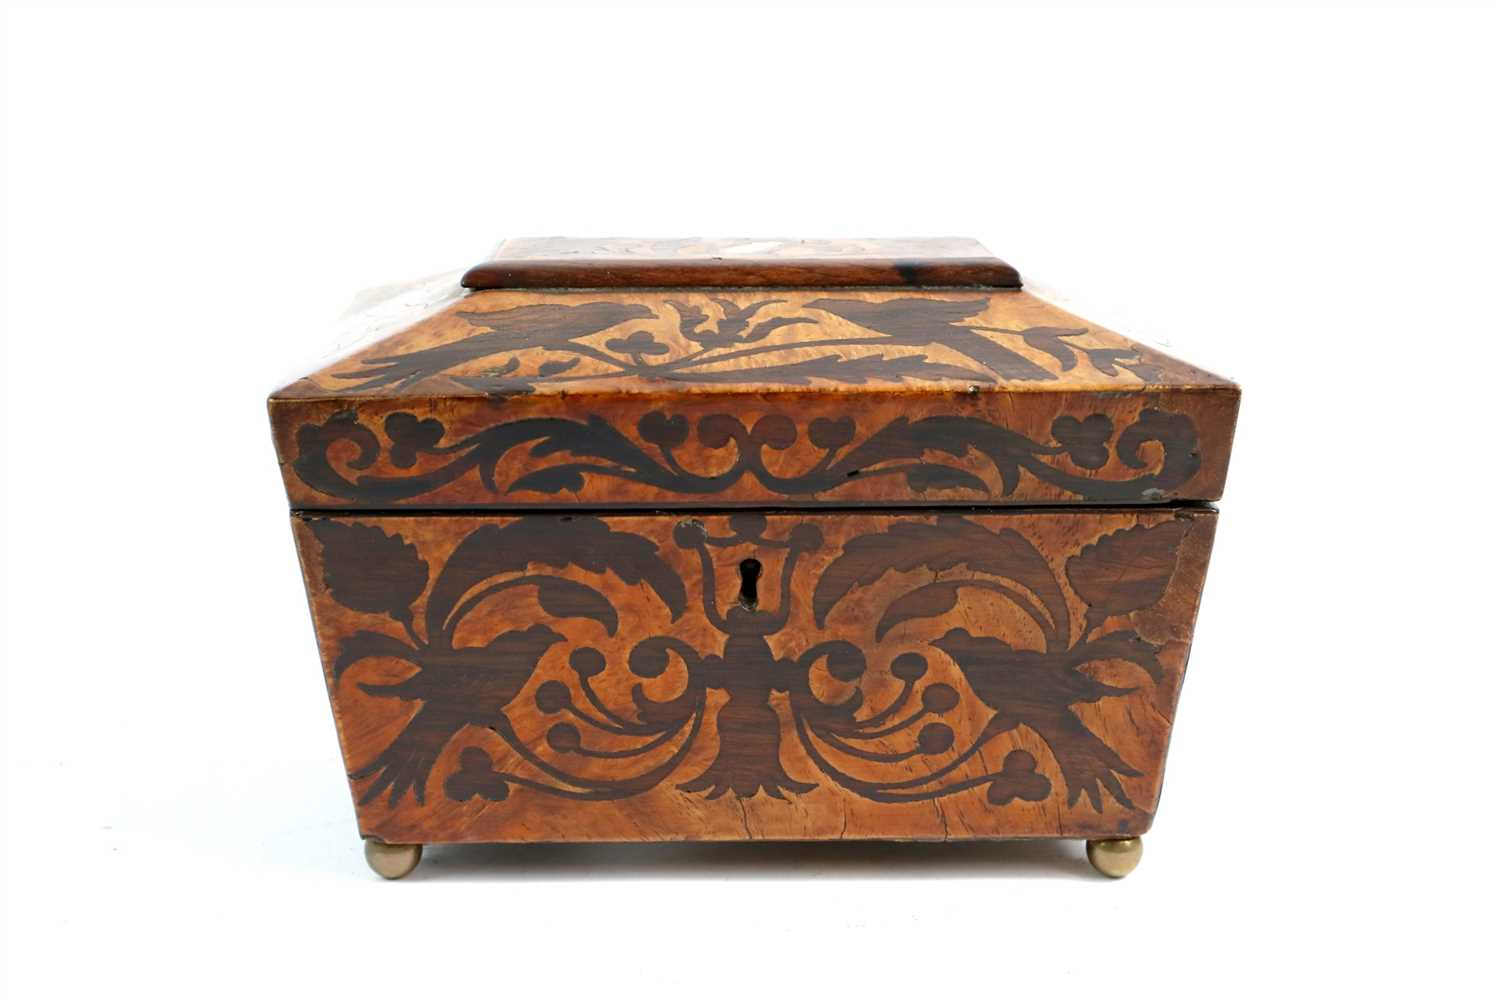 Lot 185-An early 19th century burr walnut veneered sarcophocus shaped tea caddy